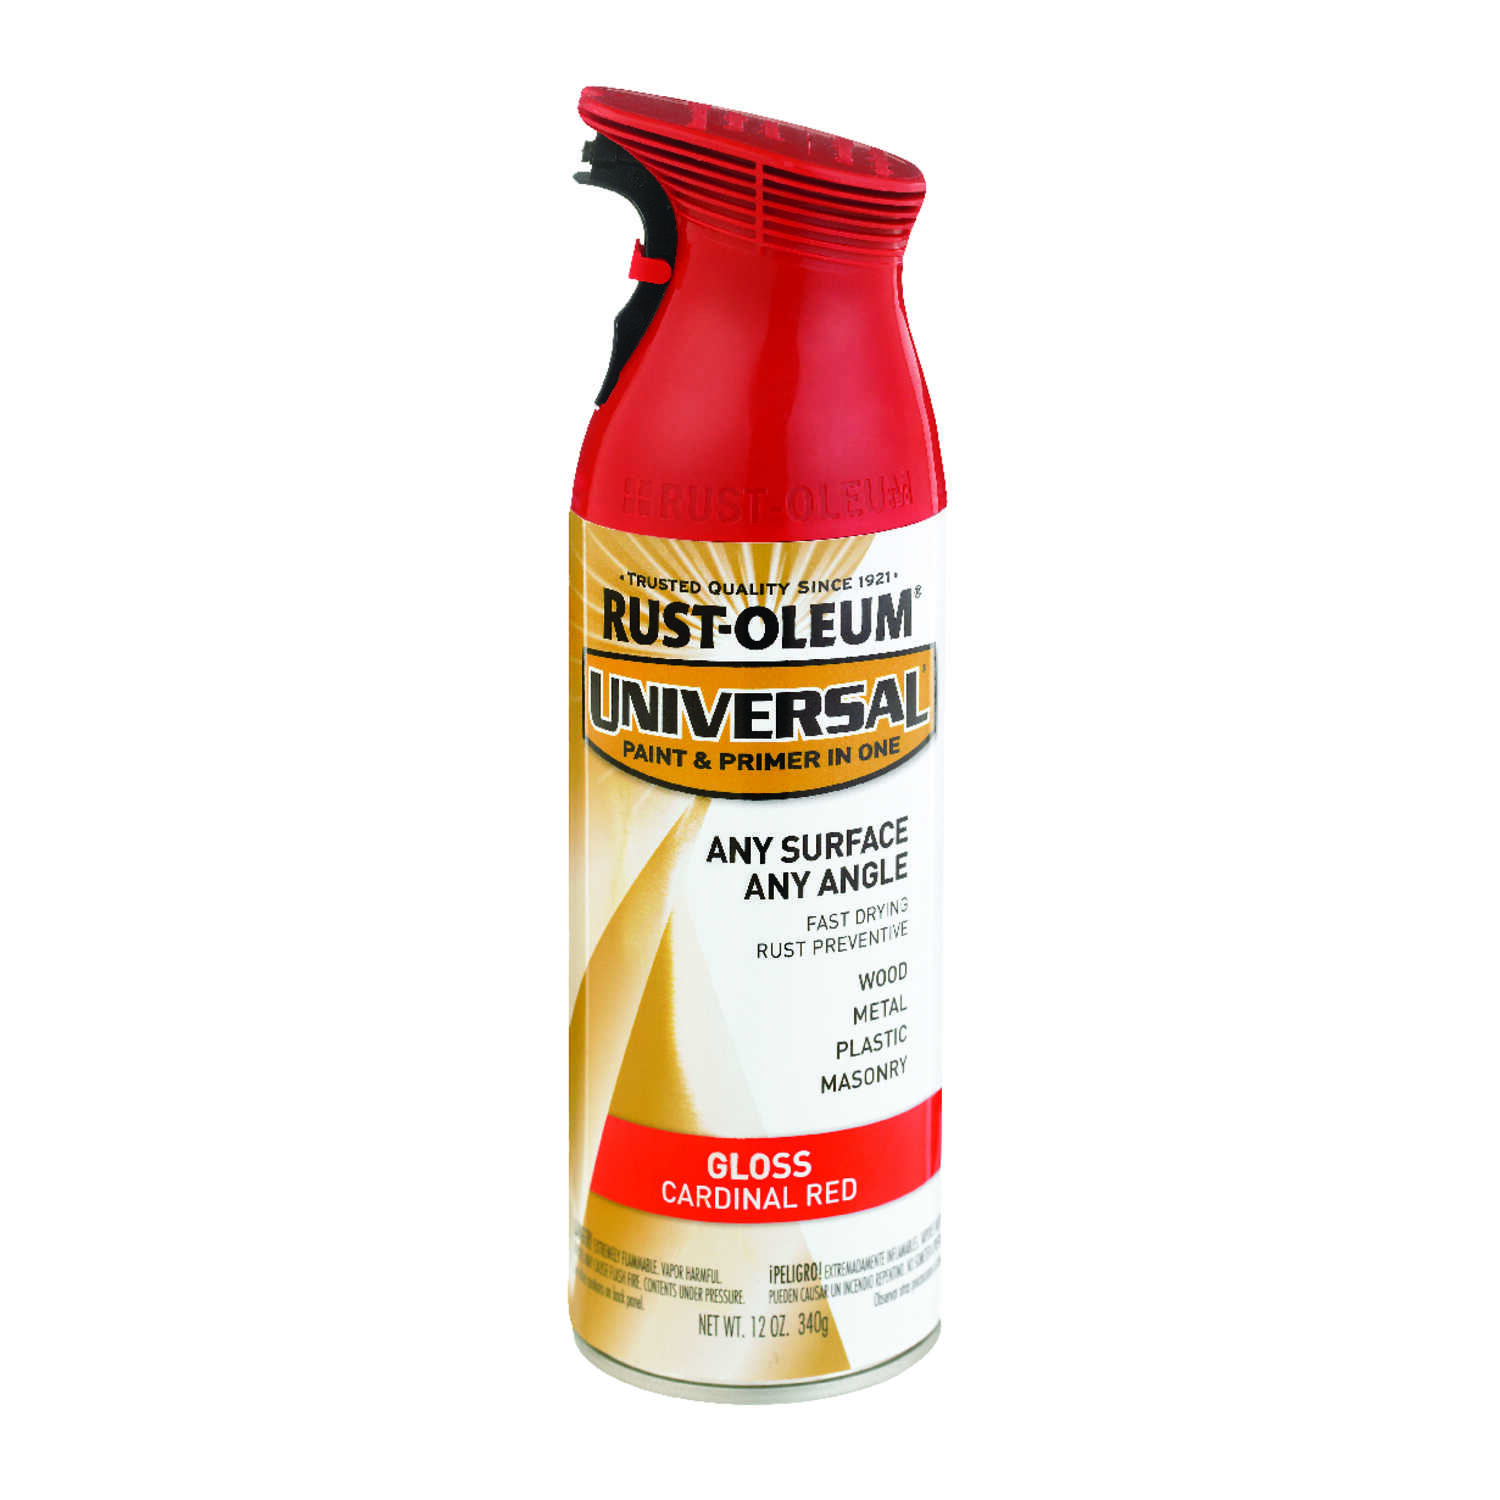 Rust-Oleum Universal Paint & Primer in One Gloss Cardinal Red Spray